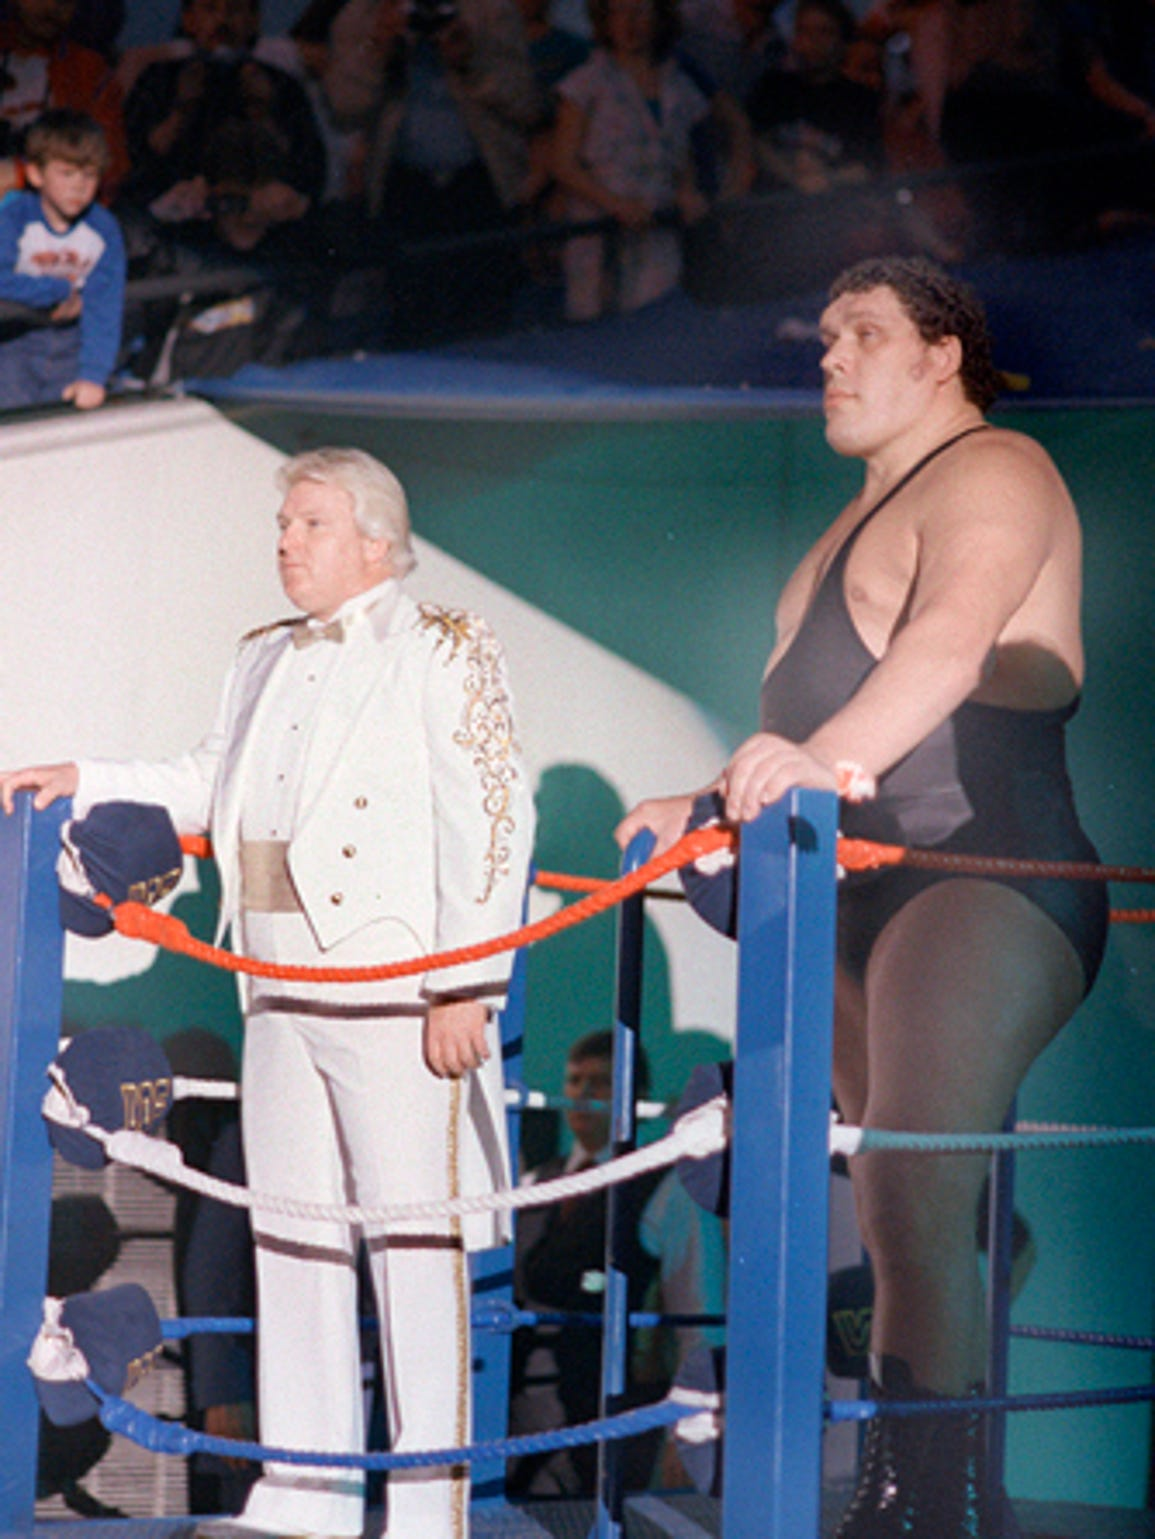 Andre the Giant makes his way to the ring, along with